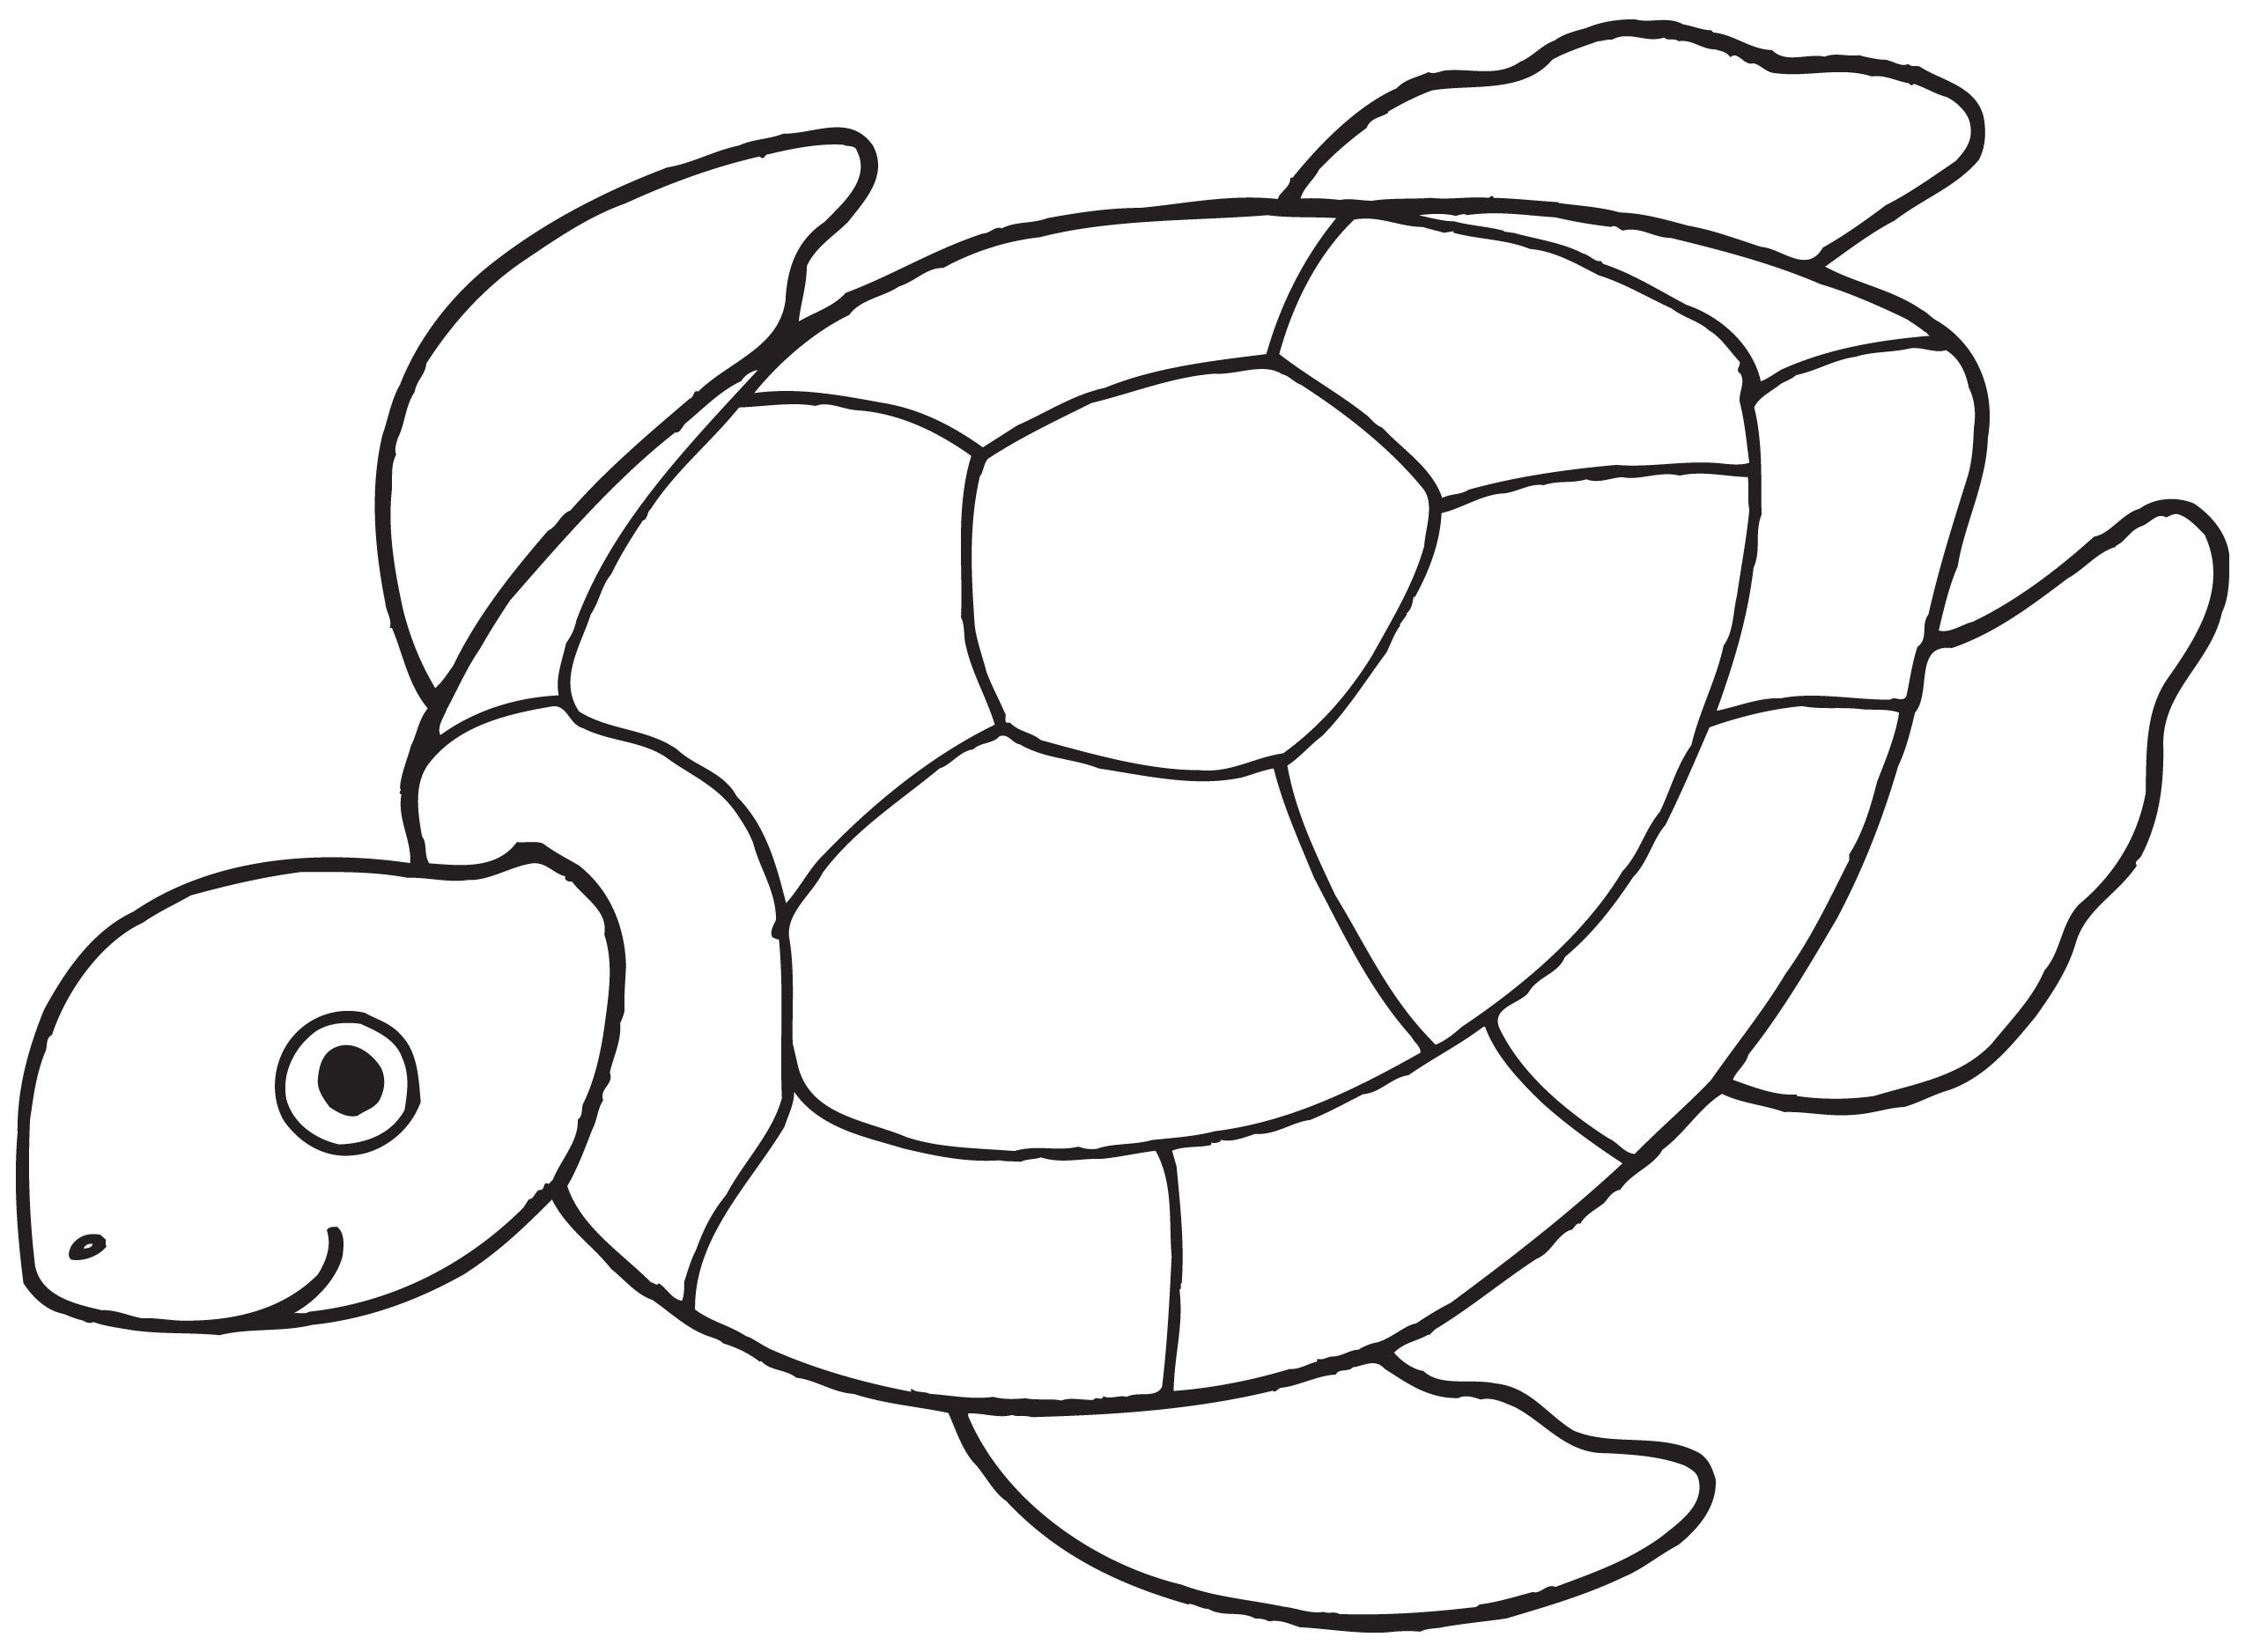 Sea Turtle Coloring Pages For Kids With Free Printable For Kids Inside Incredible